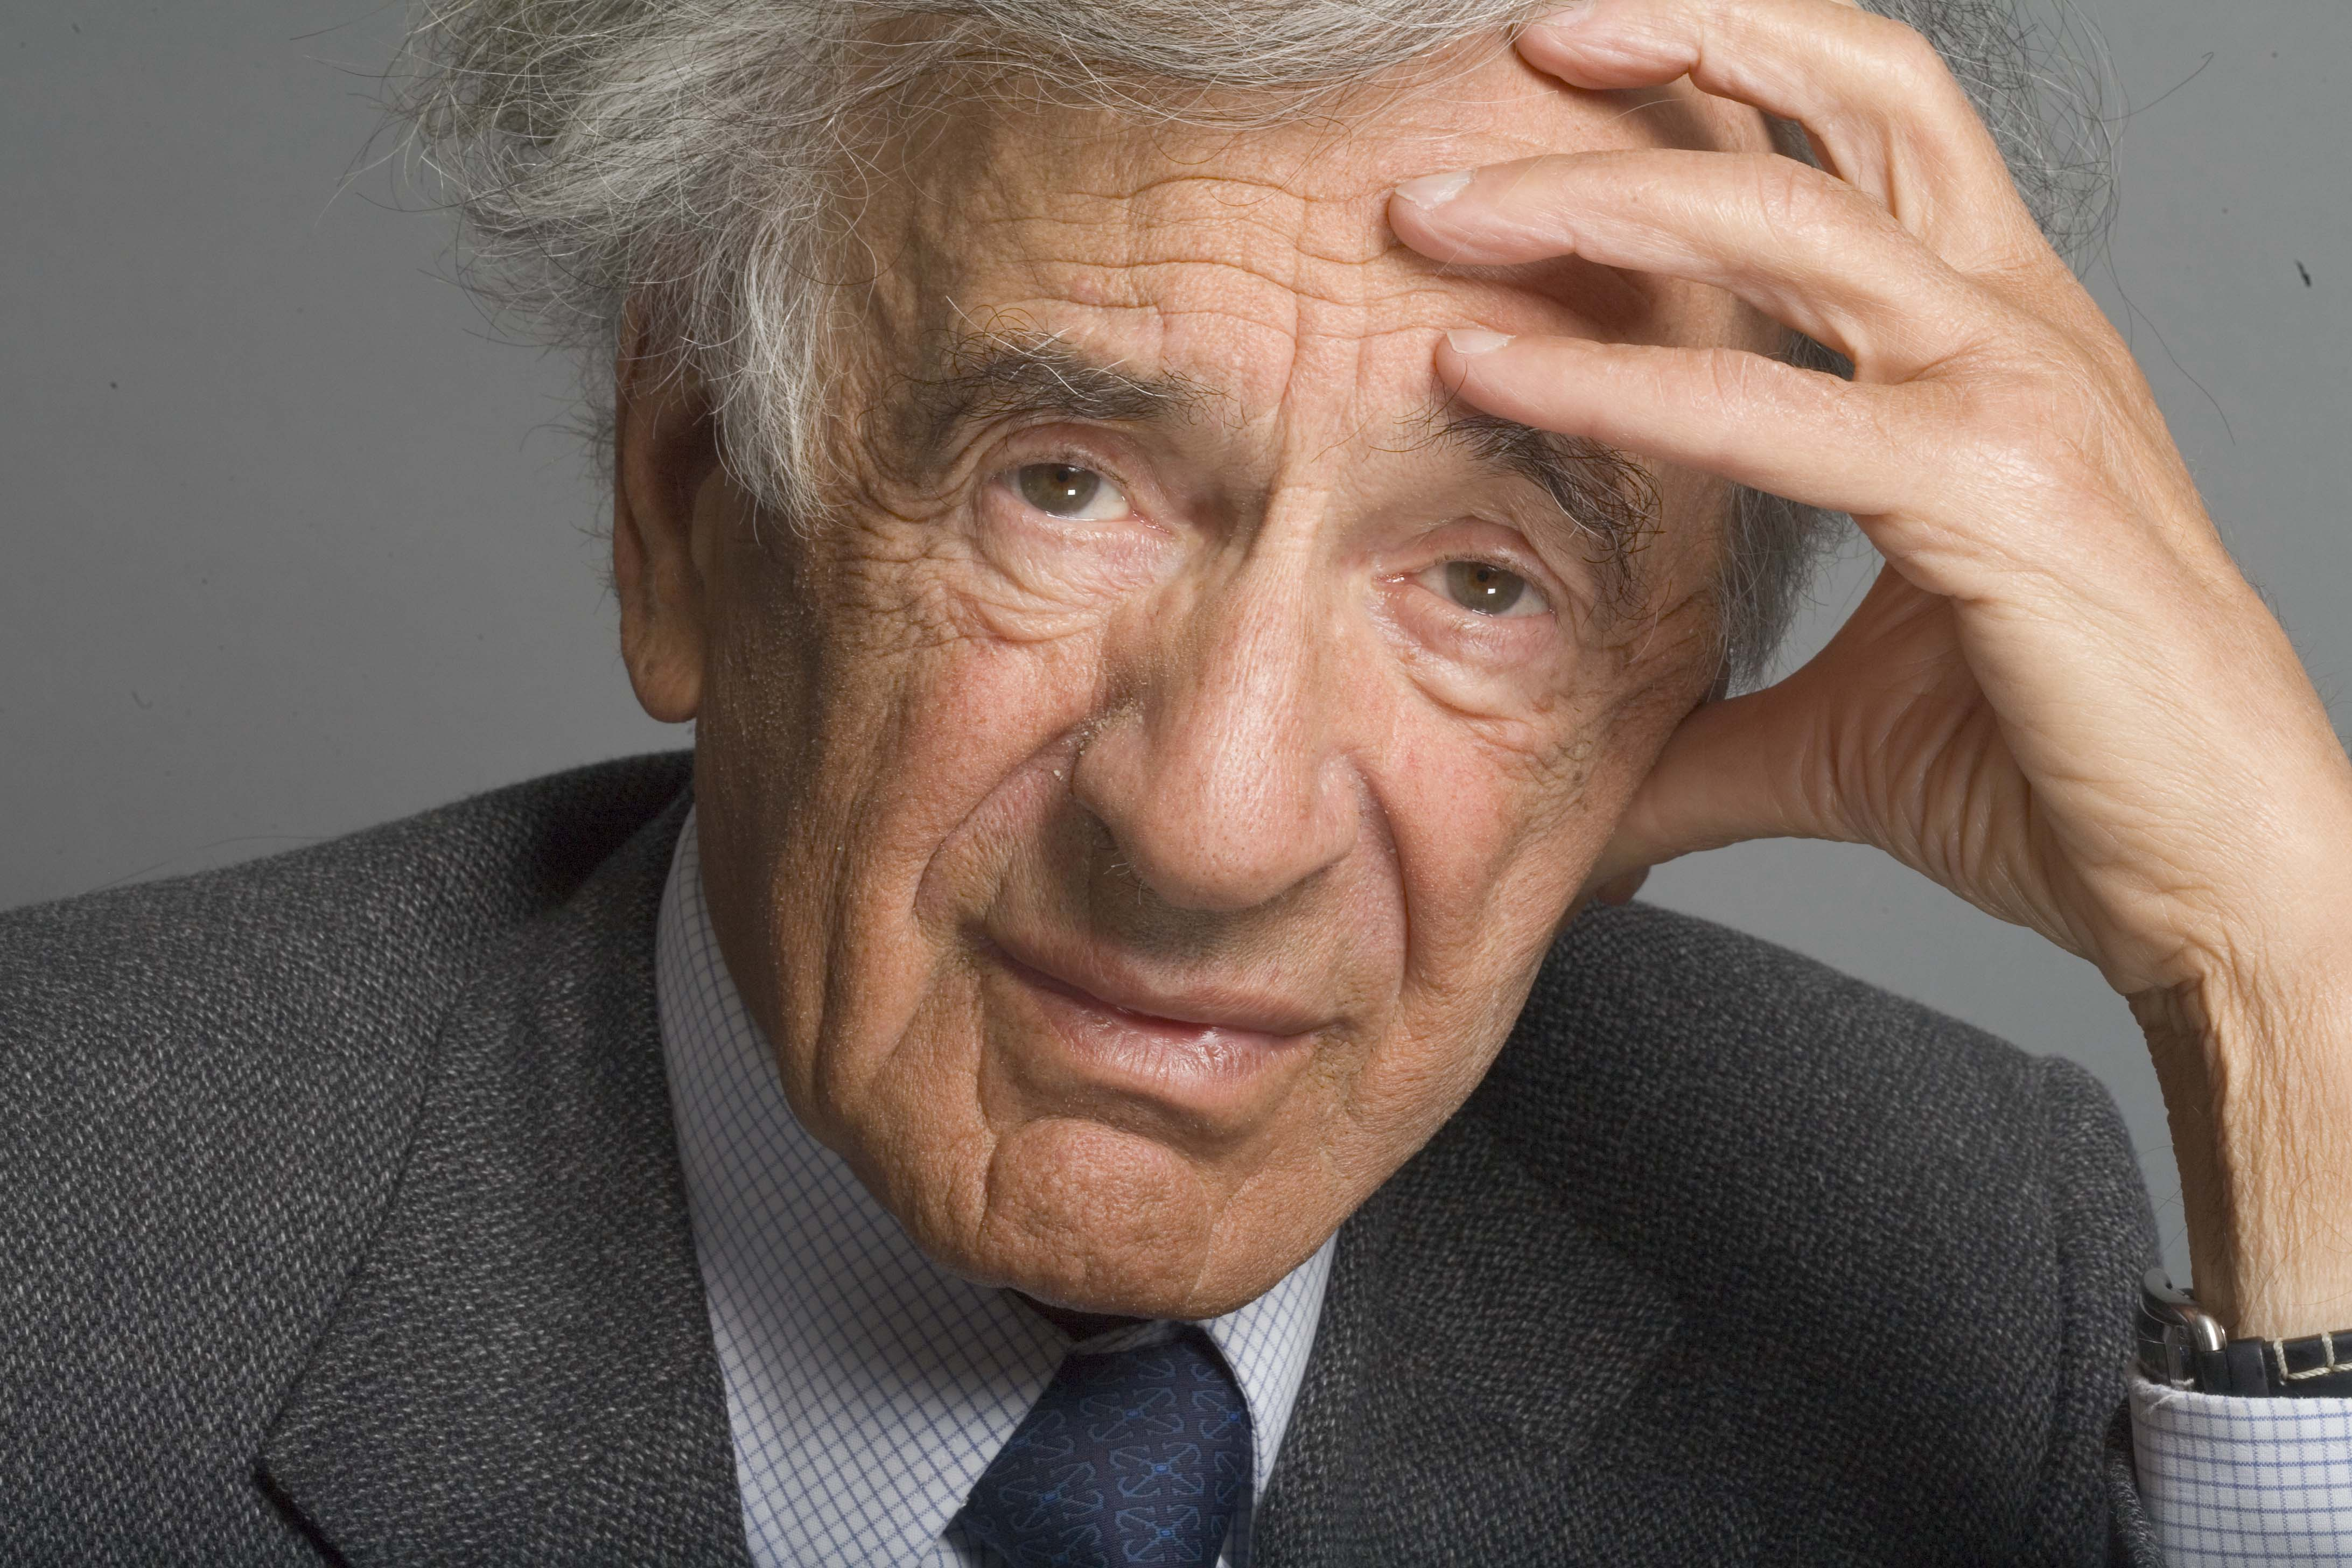 grade essay macbeth making an academic resume sat essay night analysis essay enotescom browse and night by elie wiesel essay topics night by elie